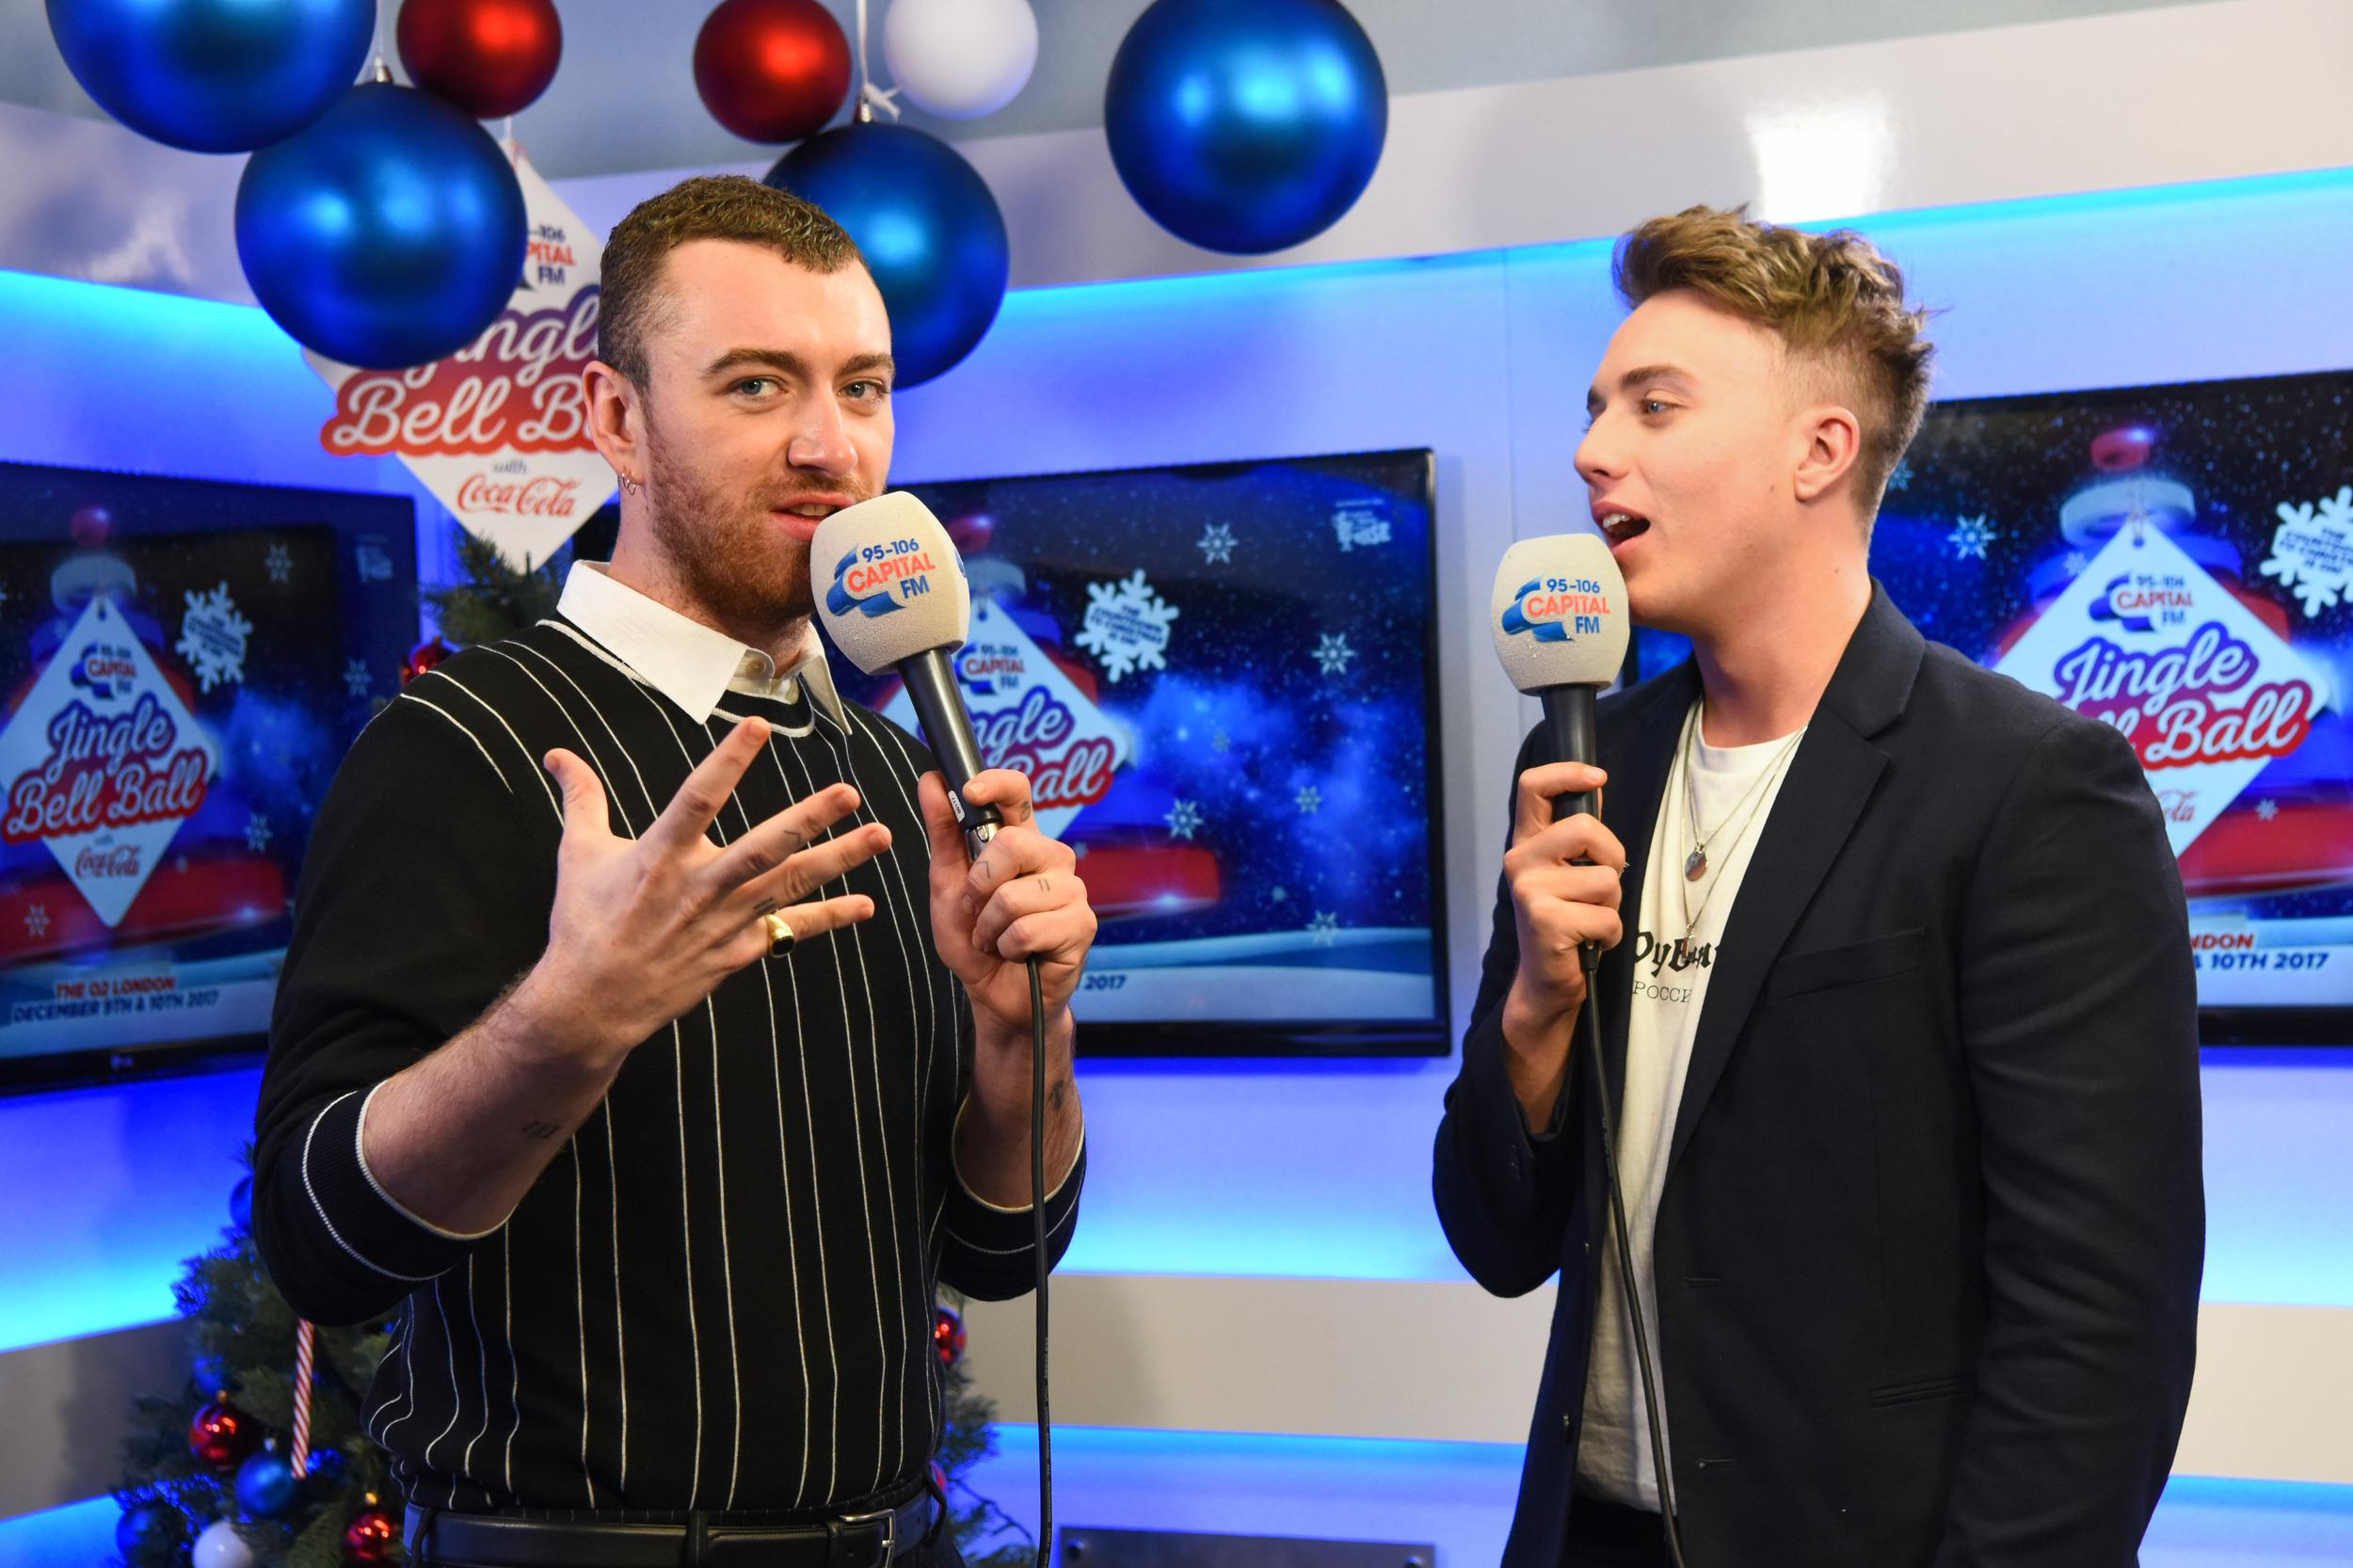 Sam Smith is interviewed backstage by presenter Roman Kemp during day one of Capital's Jingle Bell Ball 2017 at the O2 Arena, London.